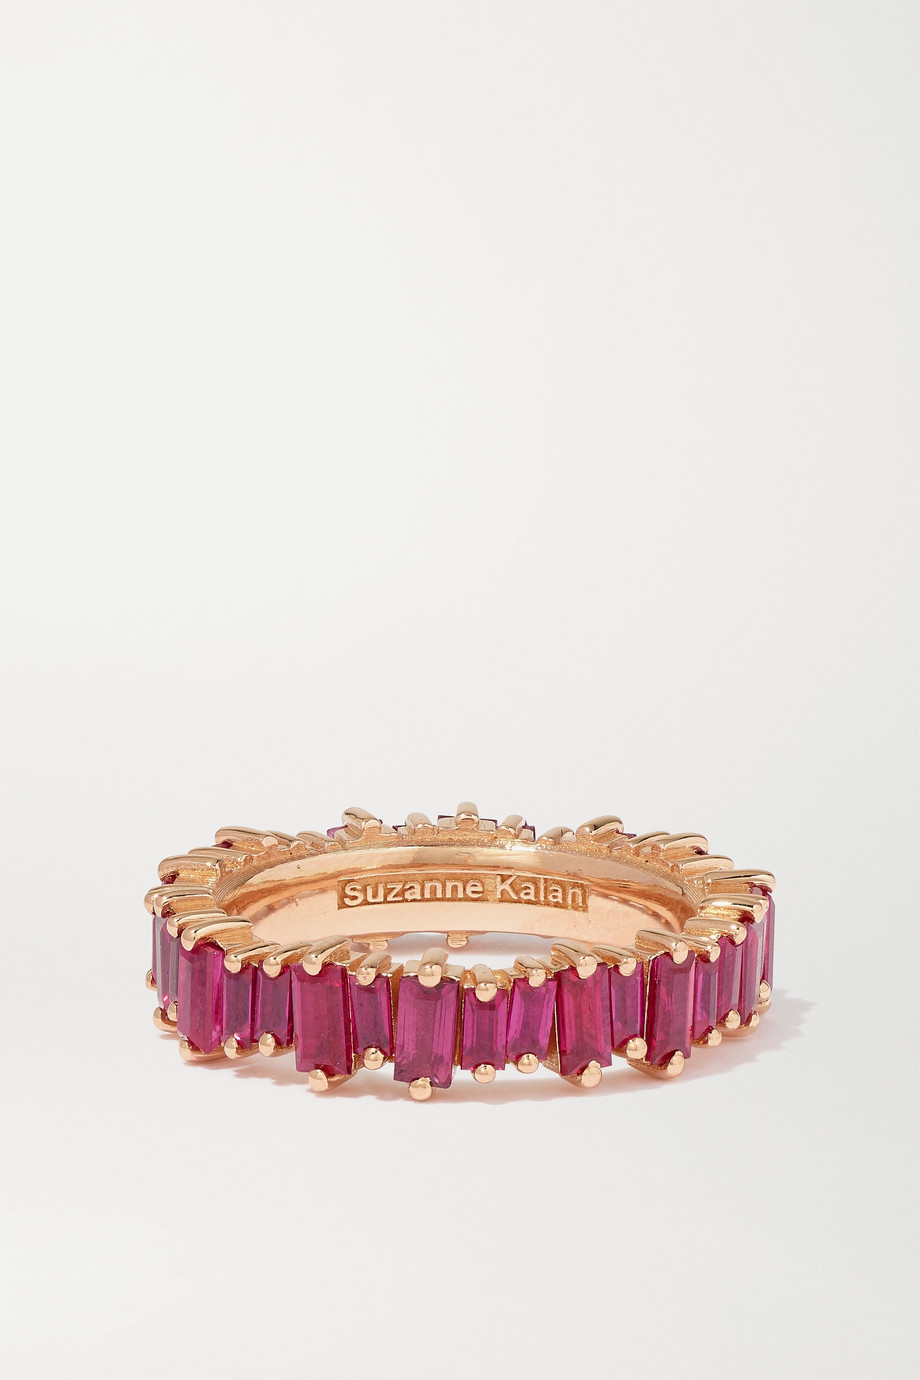 Suzanne Kalan 18-karat rose gold ruby ring